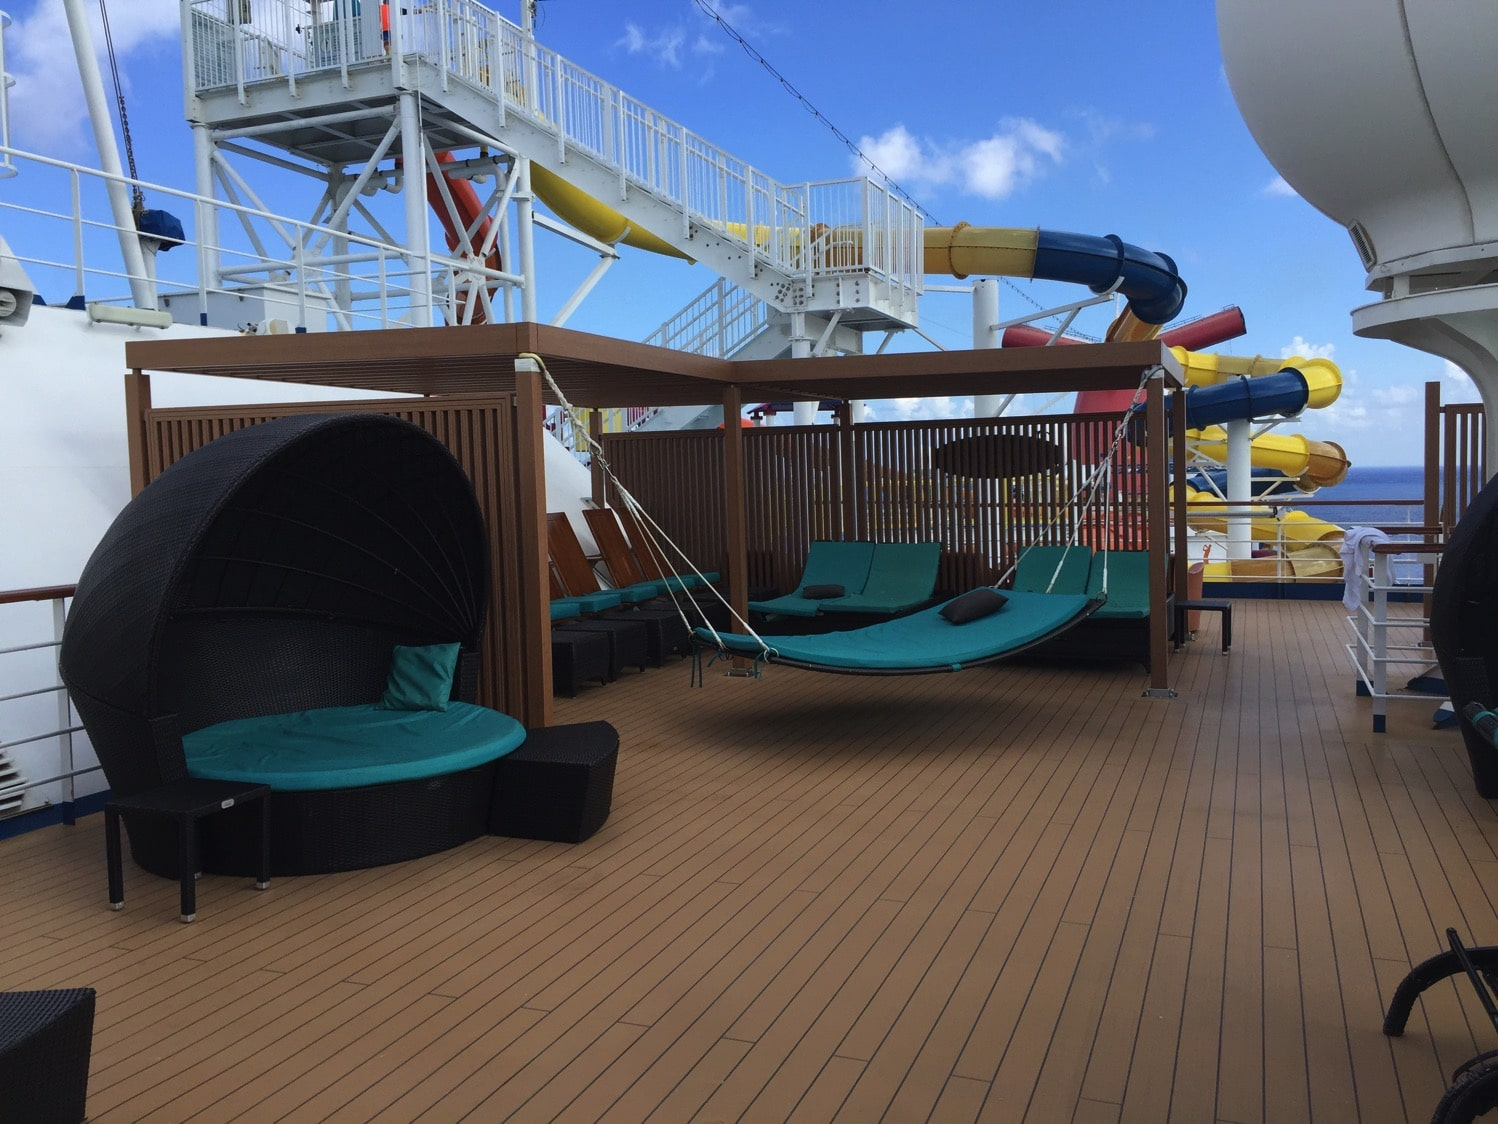 15 ways to ditch the kids and have a romantic date on your cruise